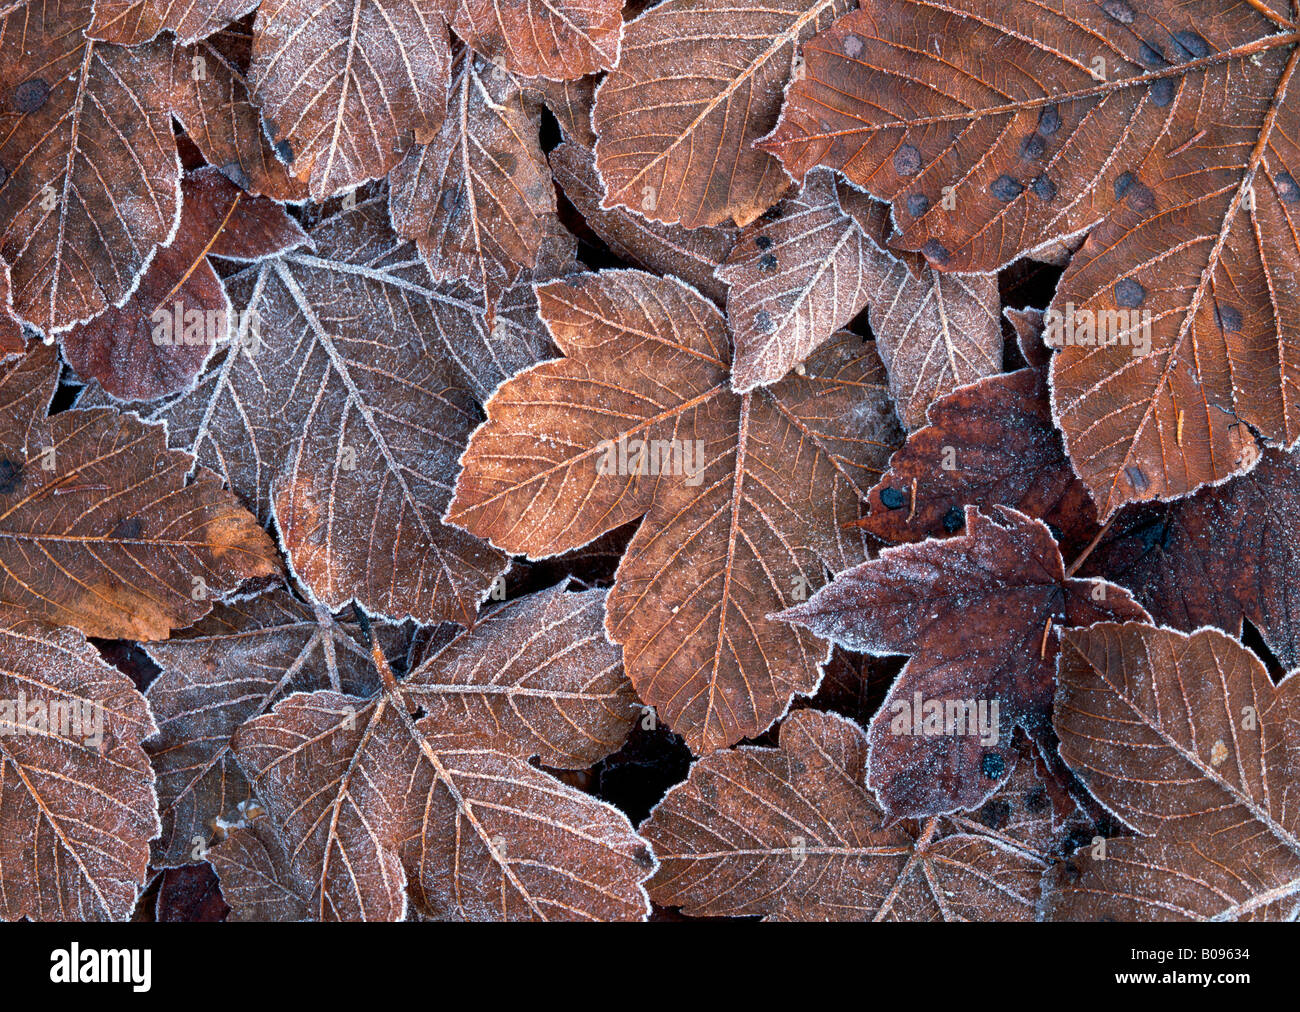 Frost-covered autumn leaves, Tirol, Austria - Stock Image